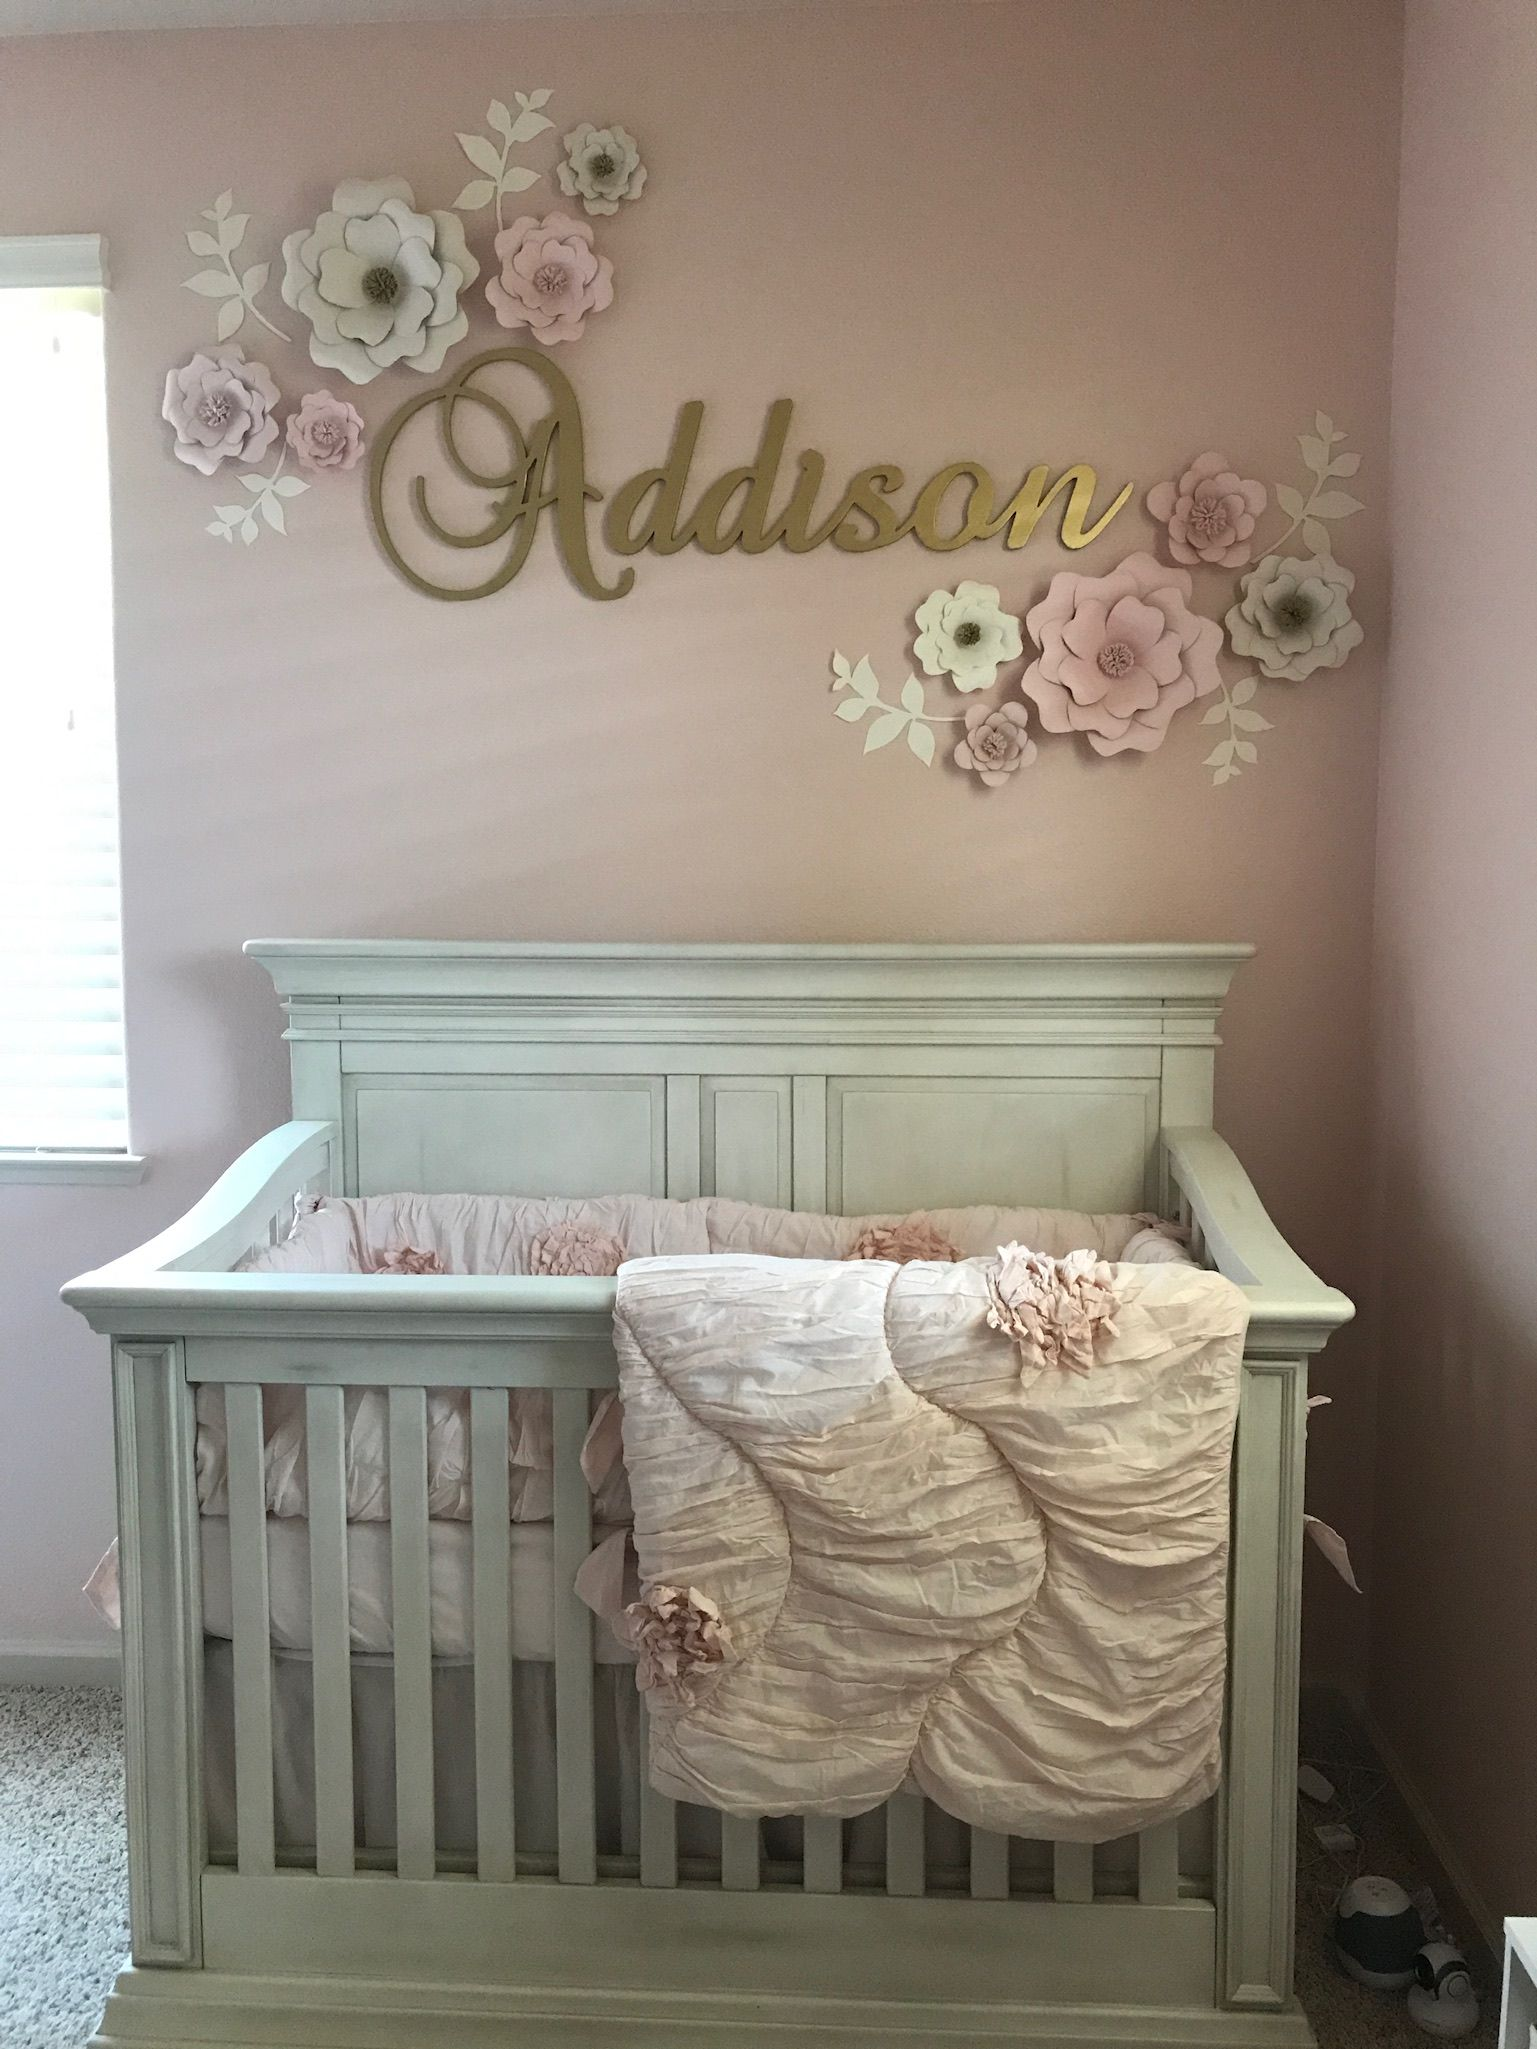 girl nursery ideas baby girl nursery with pink and gold theme  https://www.facebook.com/shorthaircutstyles/posts/1760242960932810 RAQSNGS